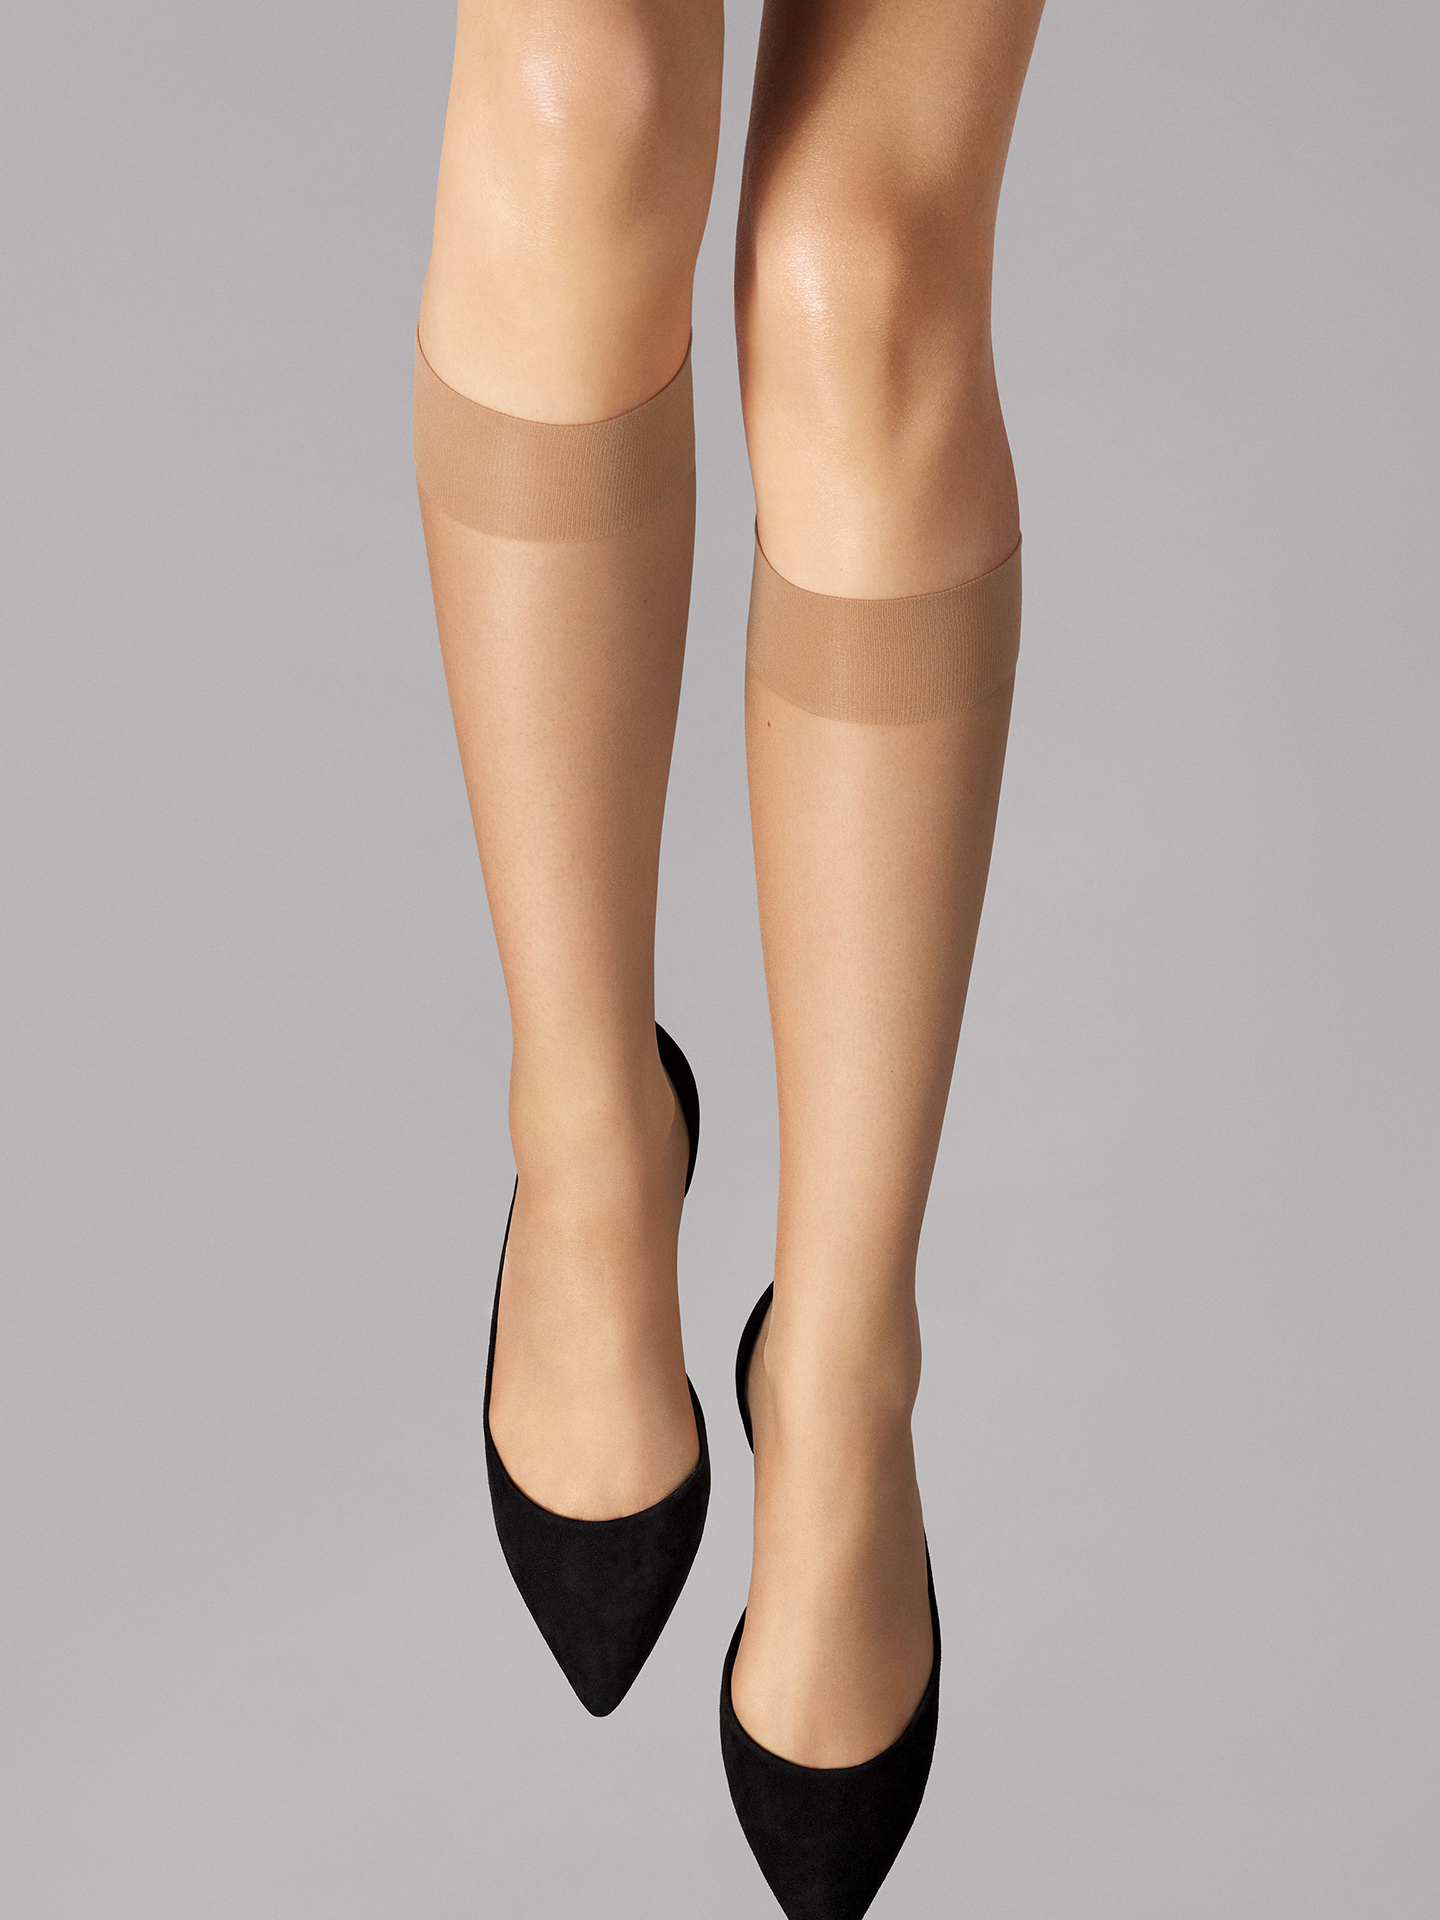 Wolford Apparel & Accessories > Clothing > Gambaletti Nude 8 Knee-Highs - 4467 - S